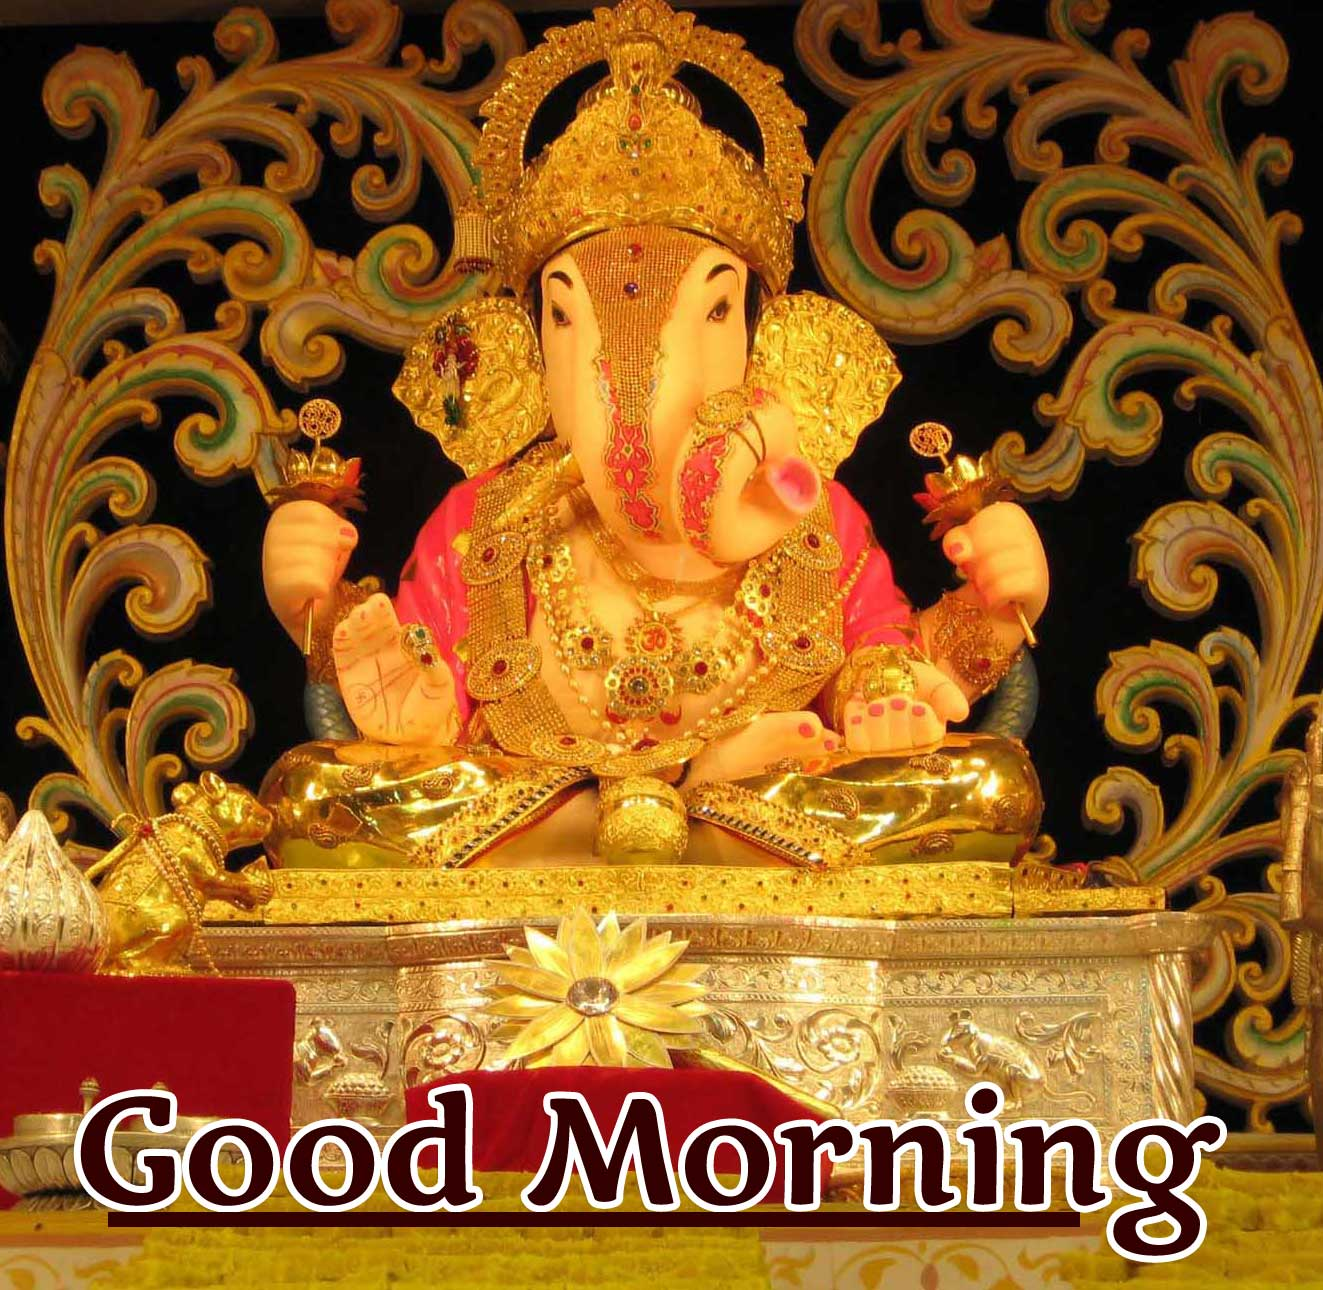 Good Morning Ganpati Bappa Photo for Facebook